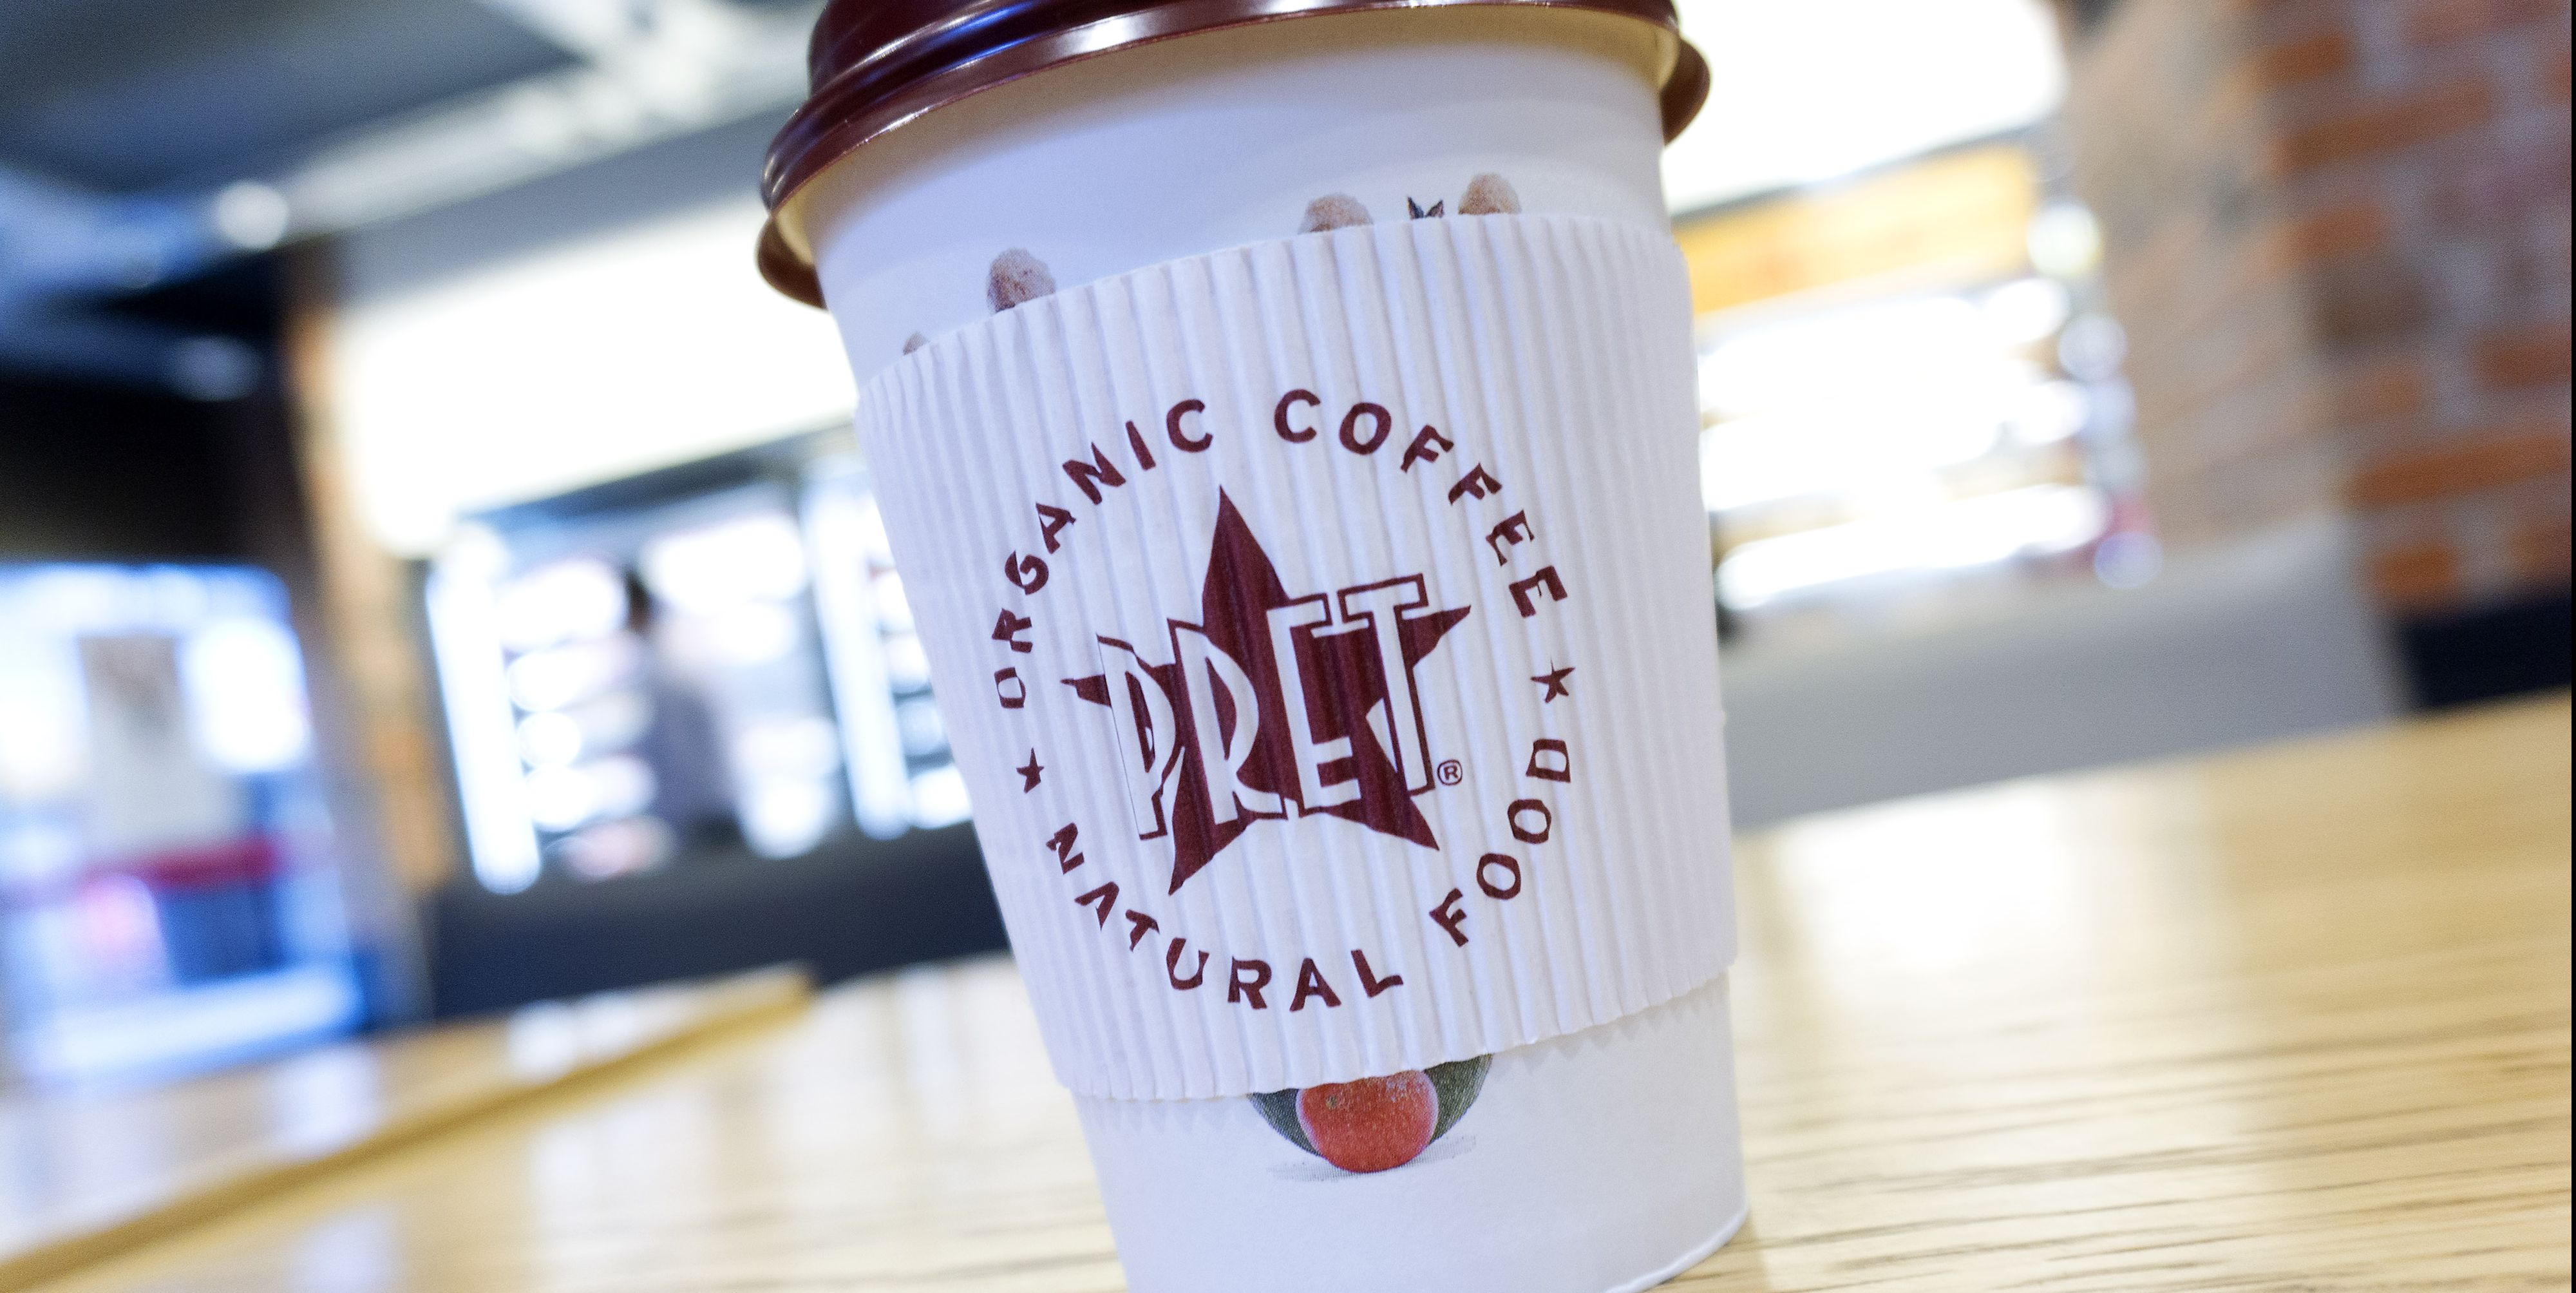 As part of Pret A Manger's new apprenticeship scheme, they'll pay your uni tuition